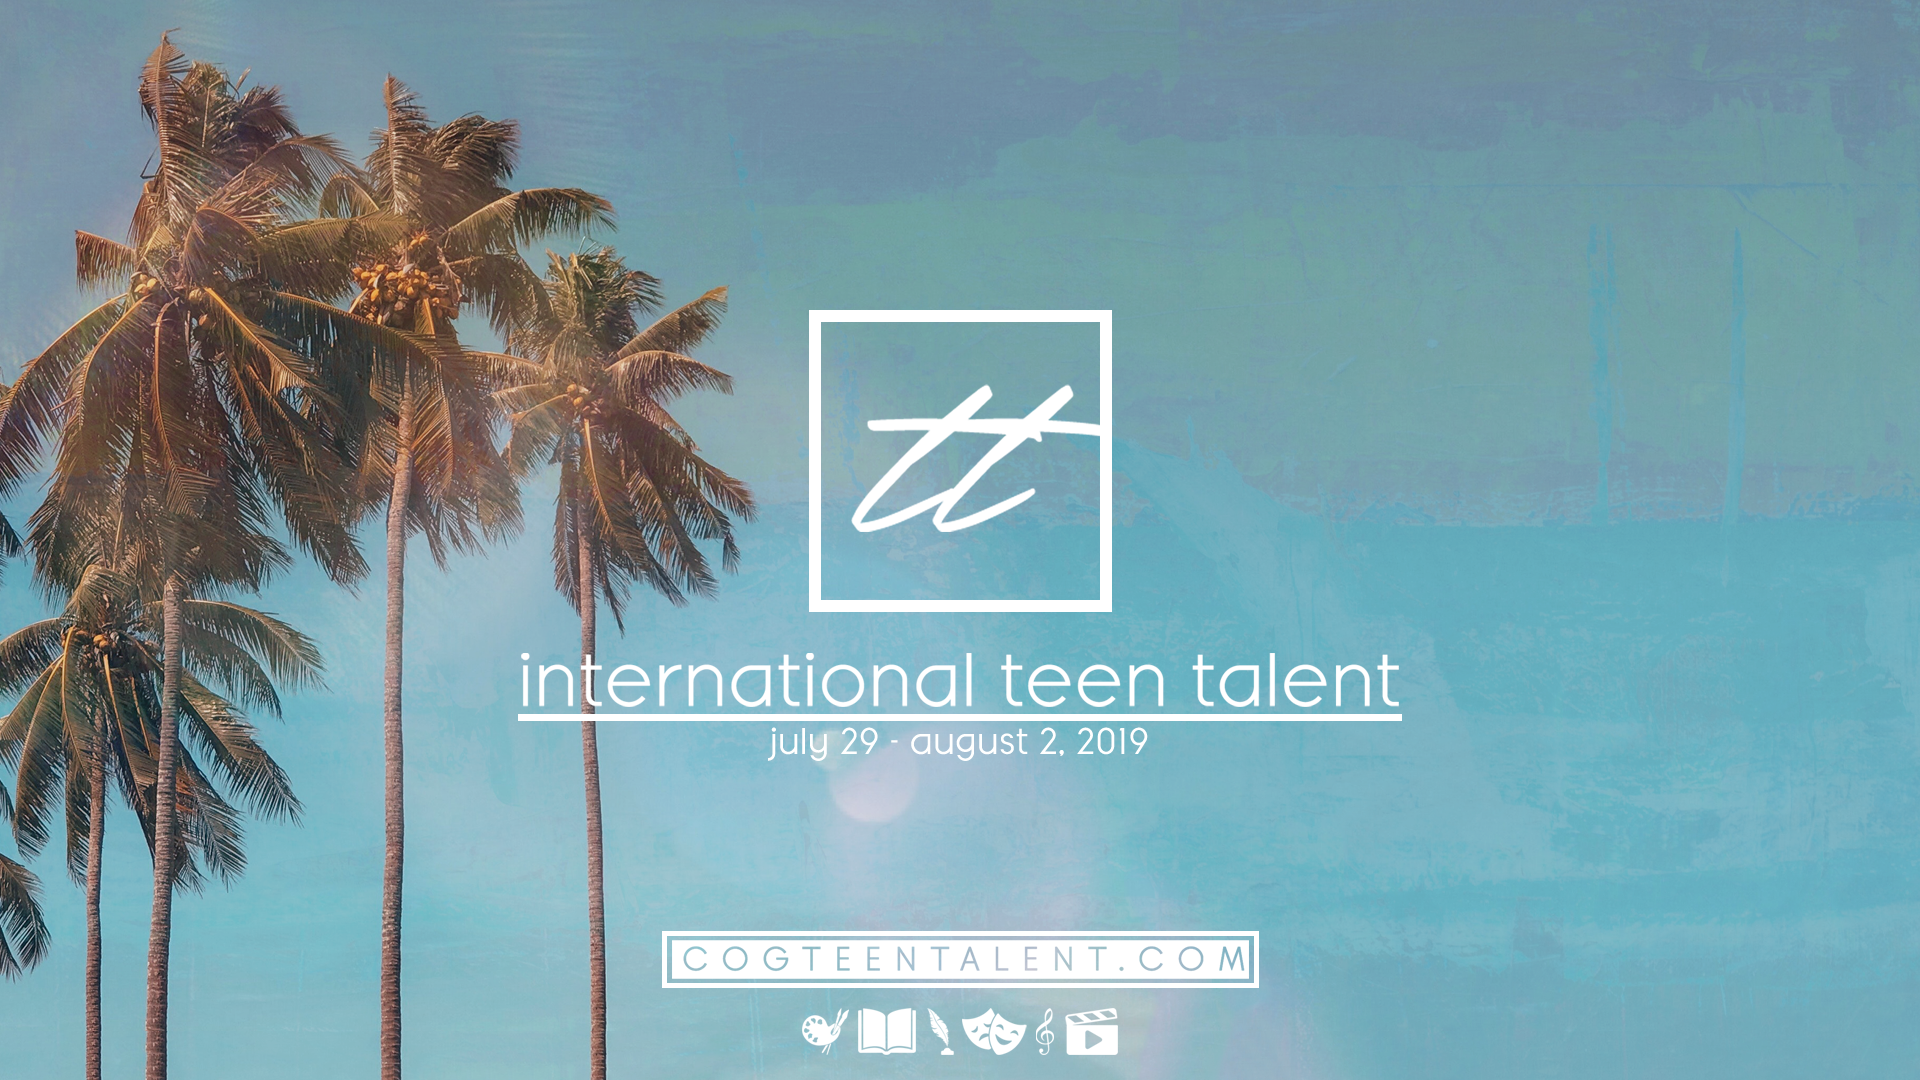 Teen_Talent_SlidePromo.png